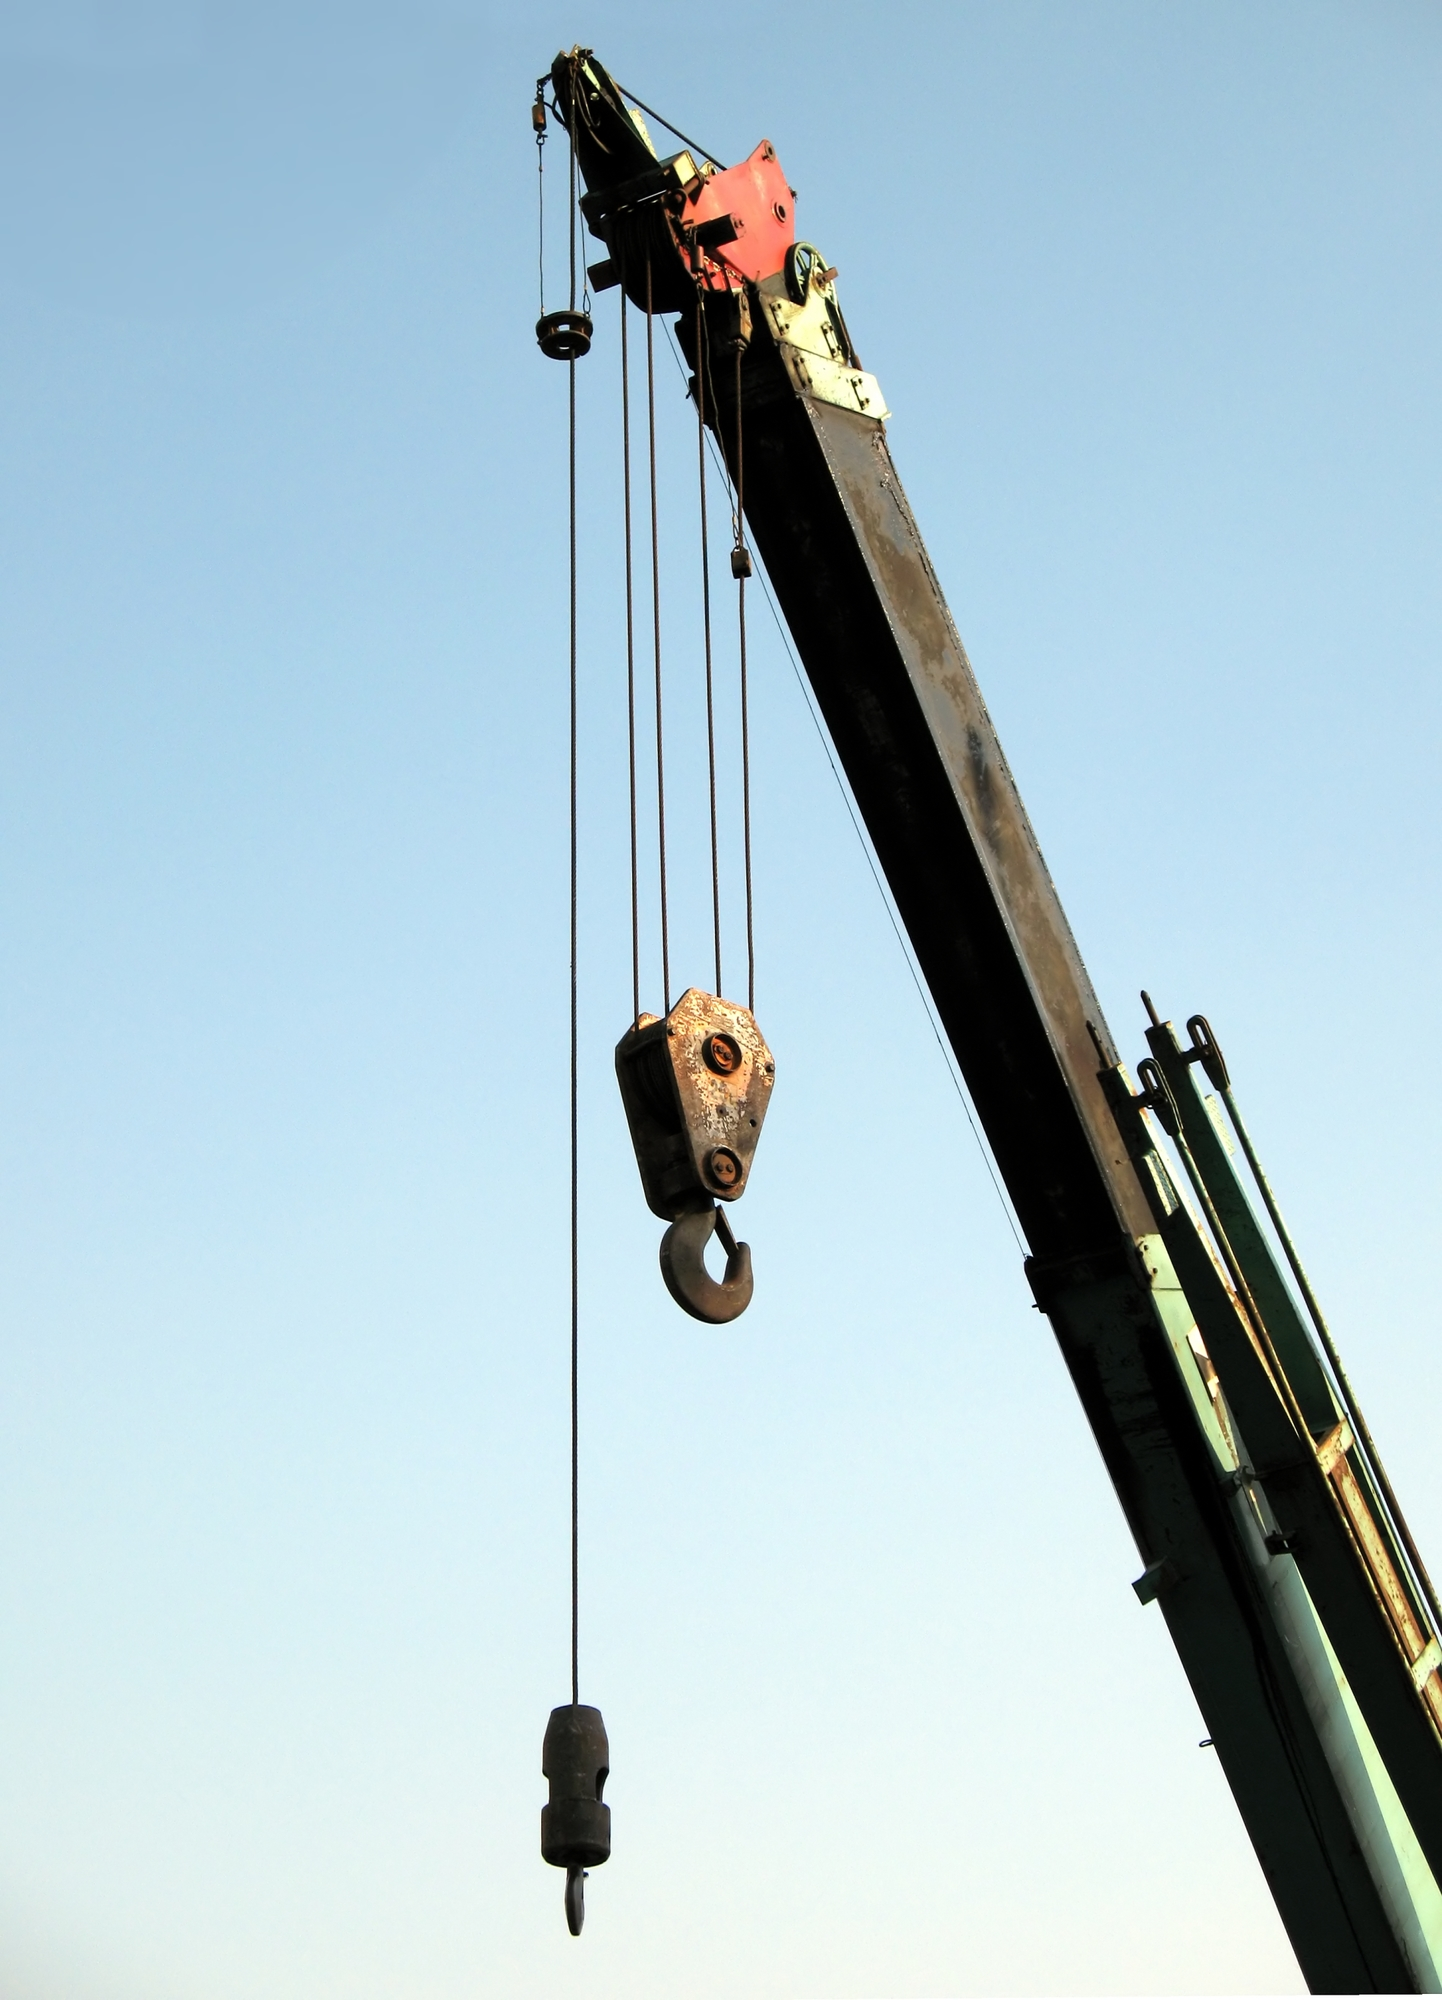 Boom Tip Mounting Vs Hook Block Mounting Of Cameras On Cranes